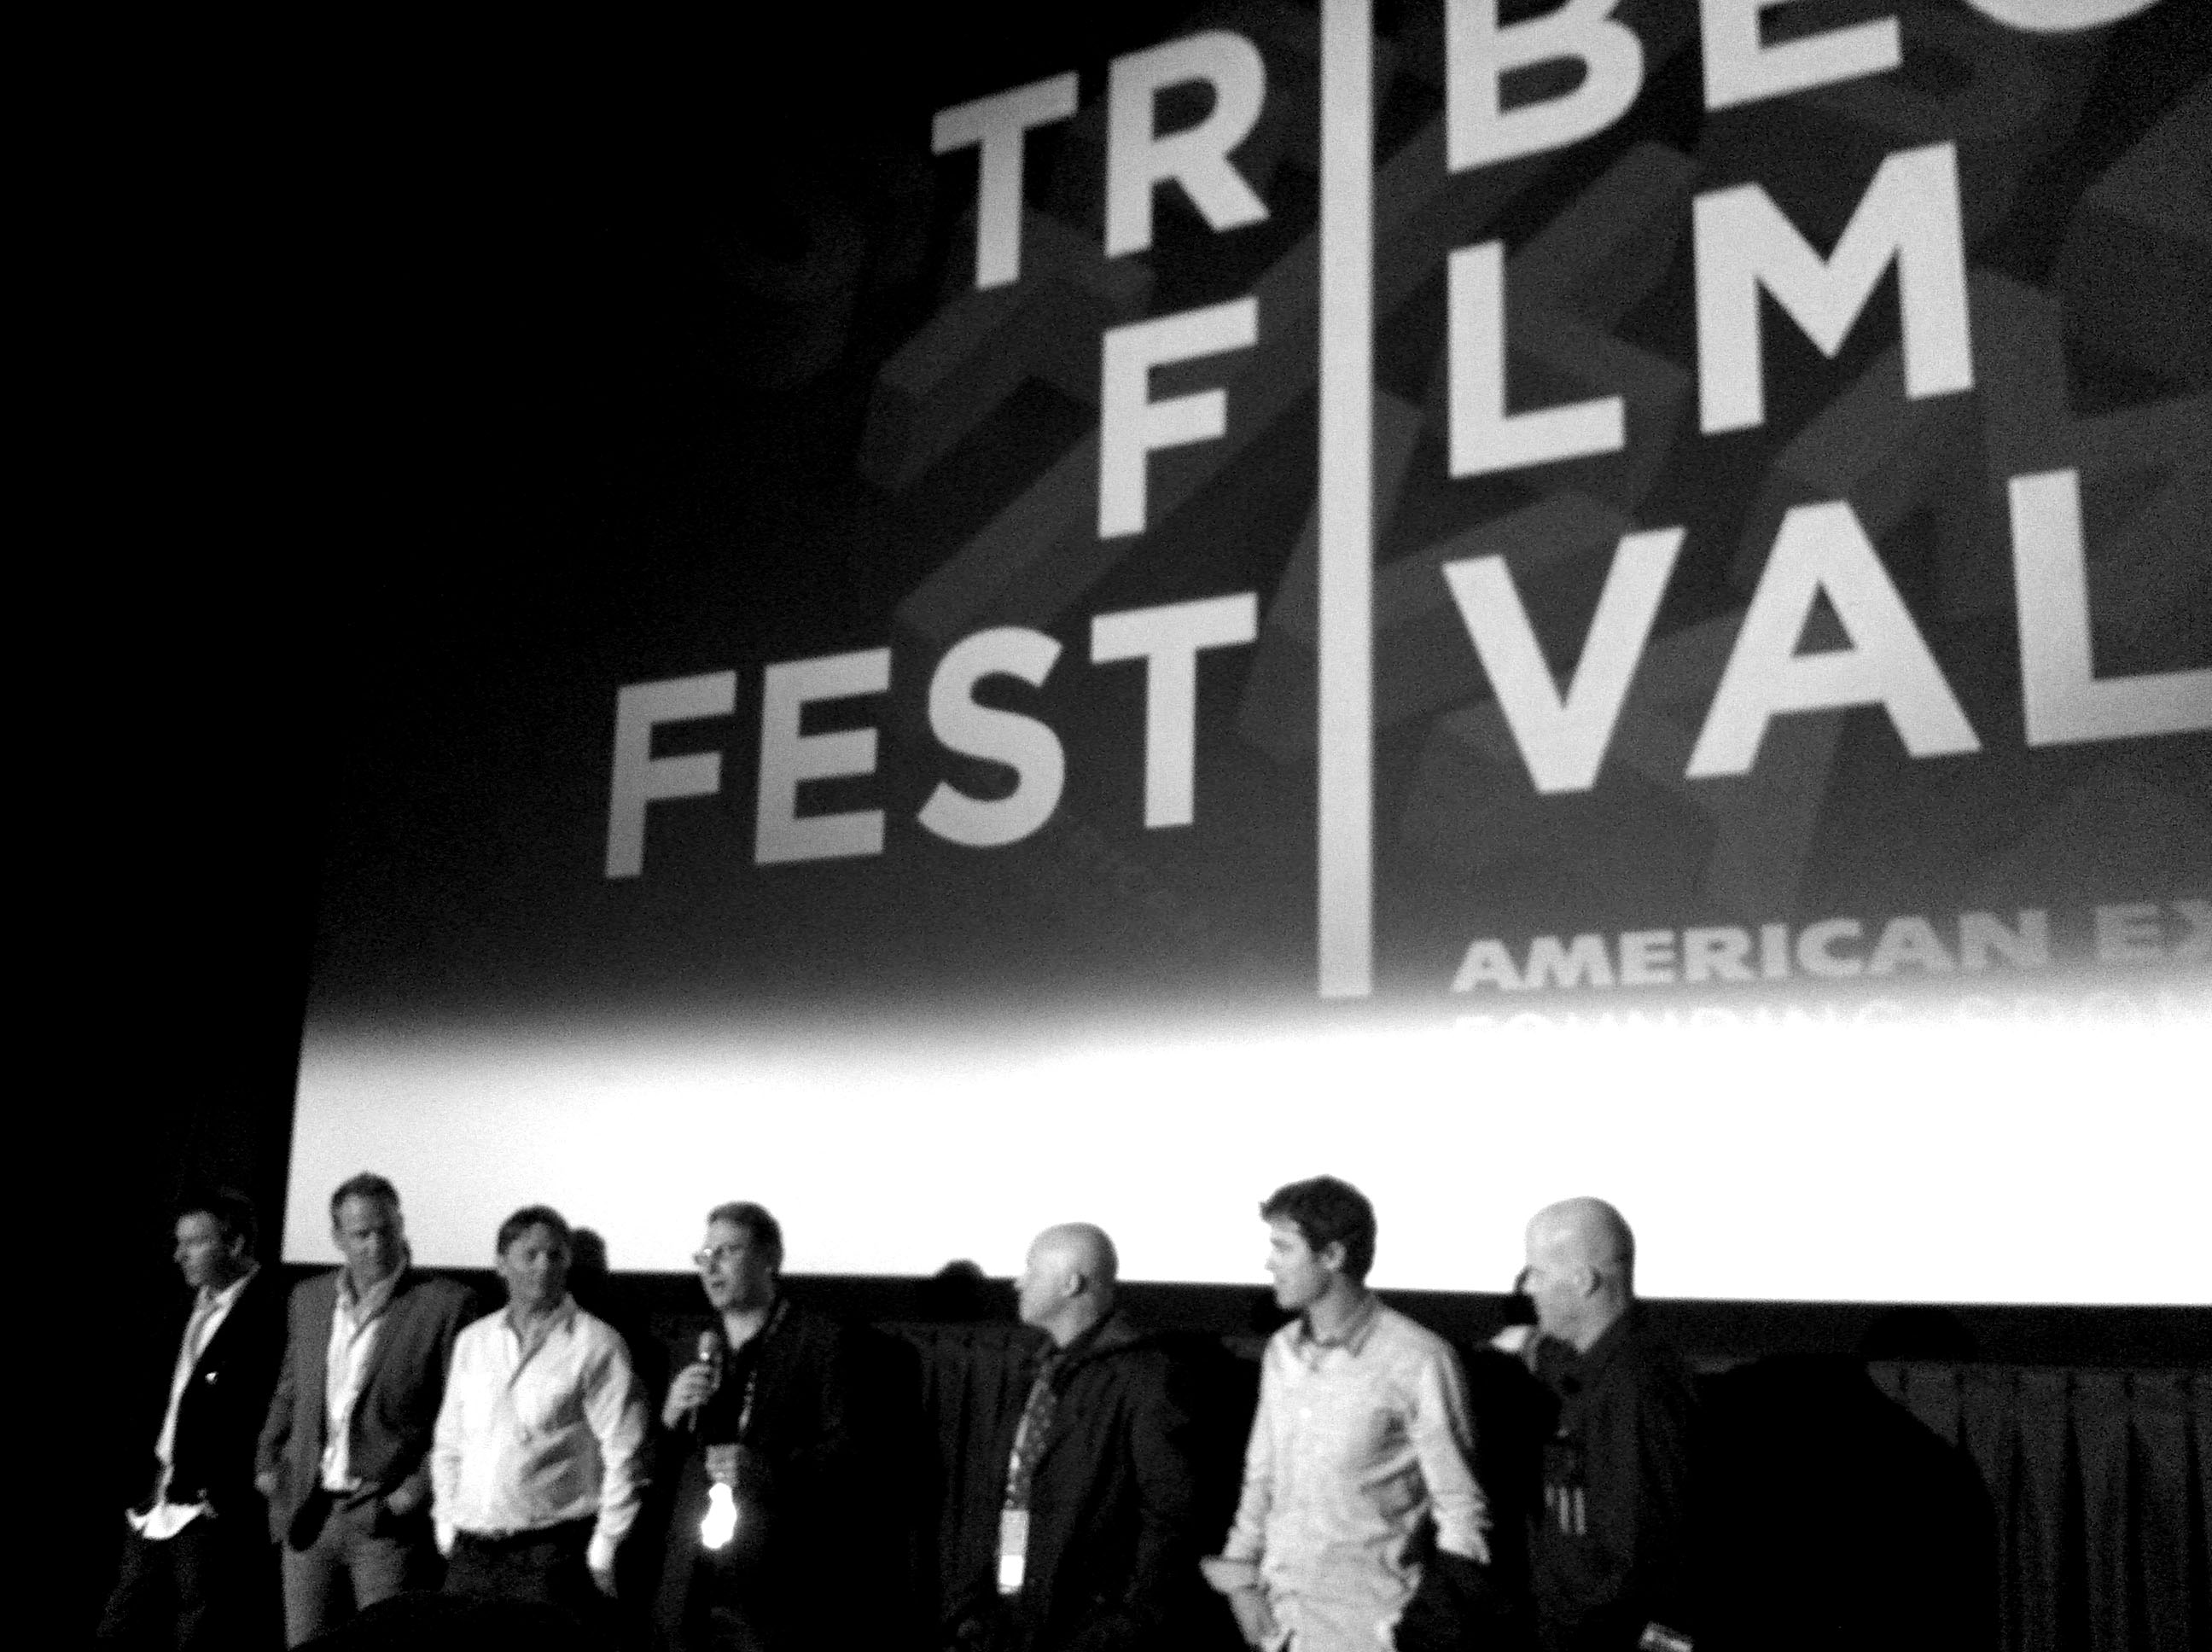 The directors and editors (from left to right): Steve Winter, Rob Bruce, Scott Bradfield, David Zieff, Murray Wais, J.T. Holmes, and Scott Gaffney. PHOTO: Ingrid Backstrom